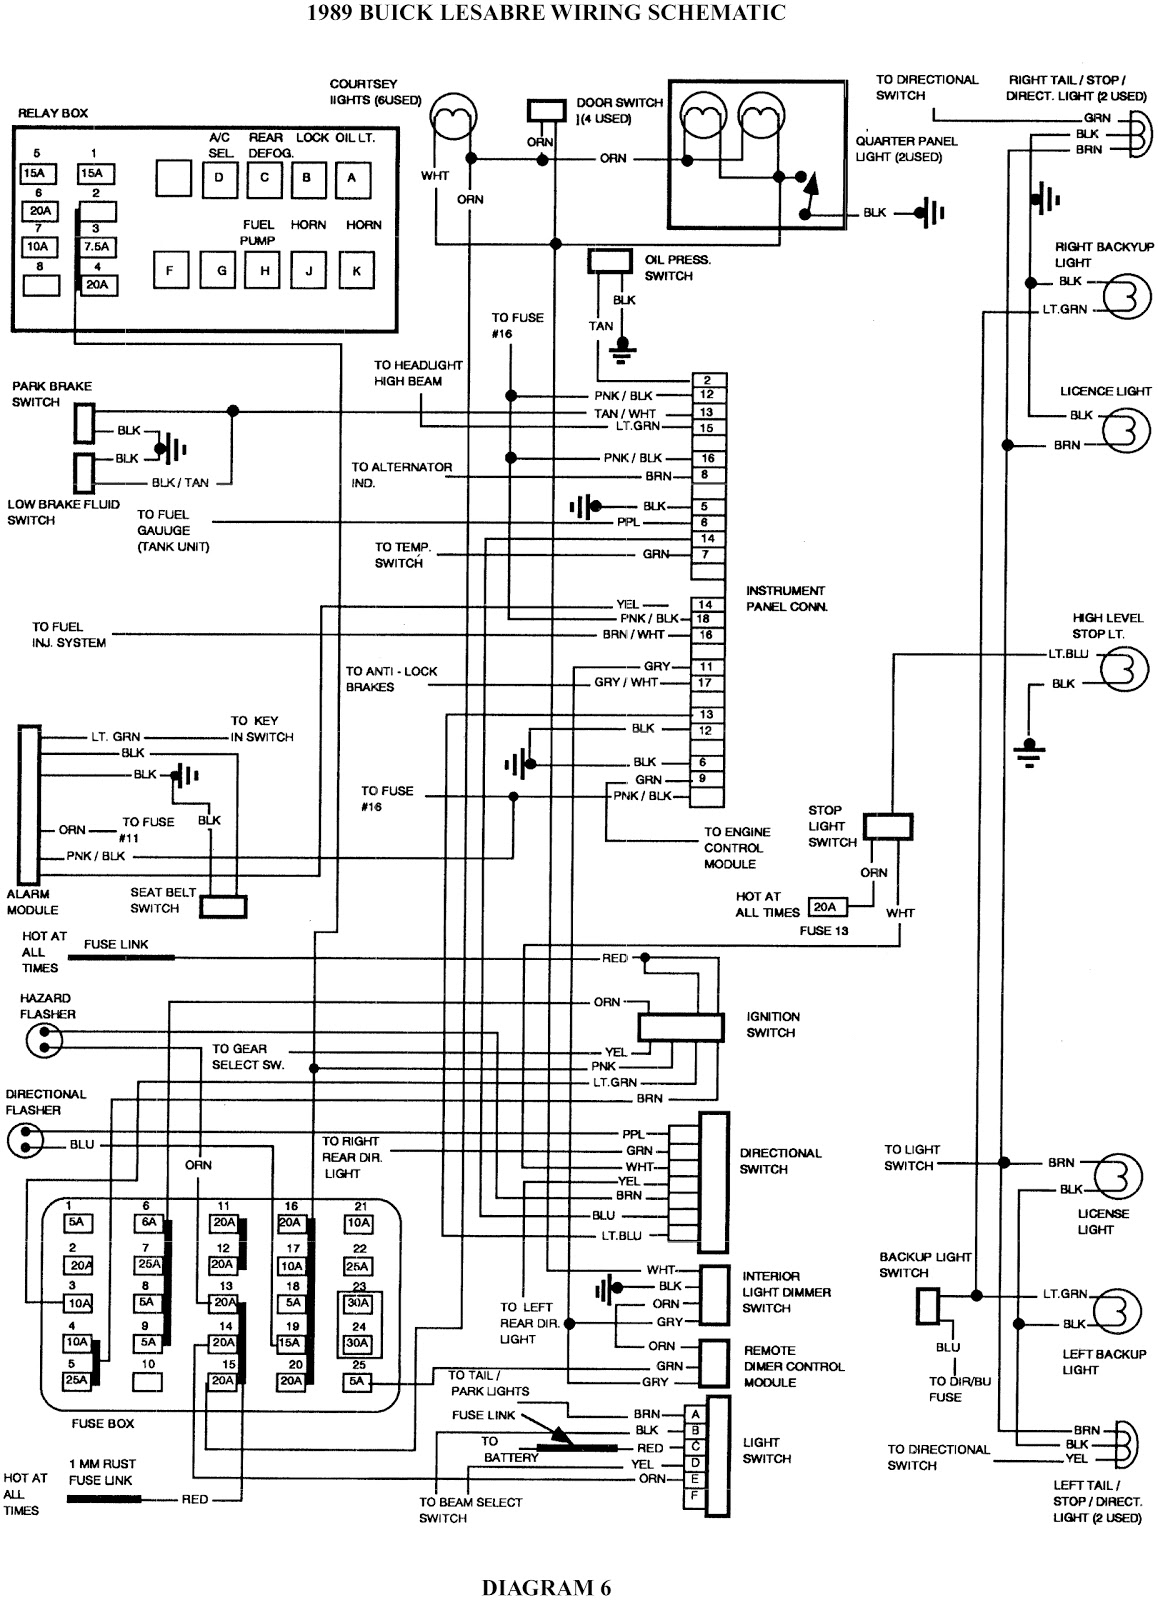 2003 Buick Lesabre Airbag Wiring on buick lesabre fuse diagram wiring diagrams schematics